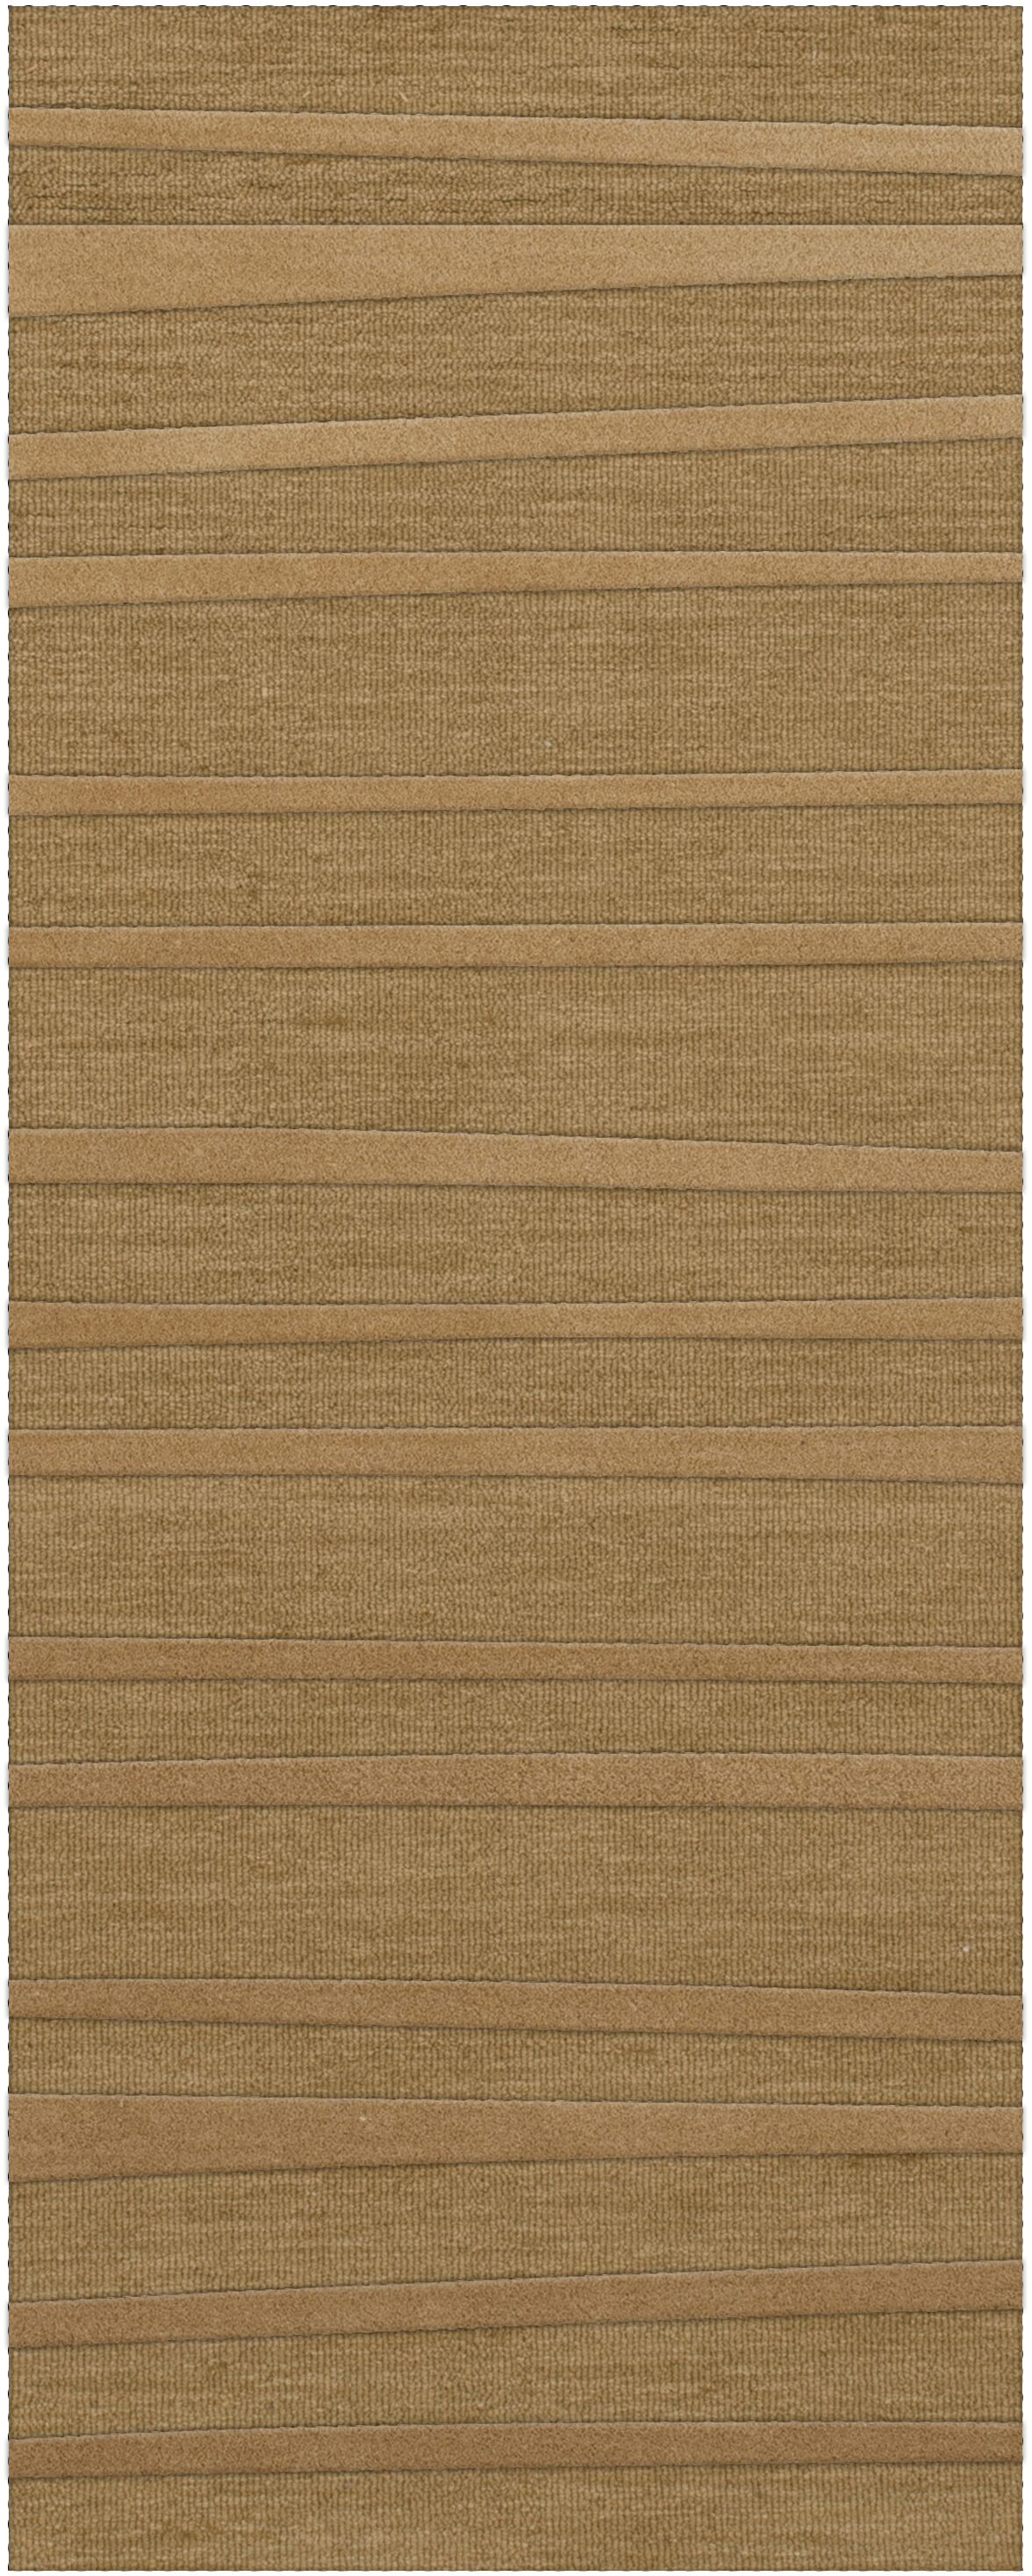 Dover Tufted Wool Wheat Area Rug Rug Size: Runner 2'6